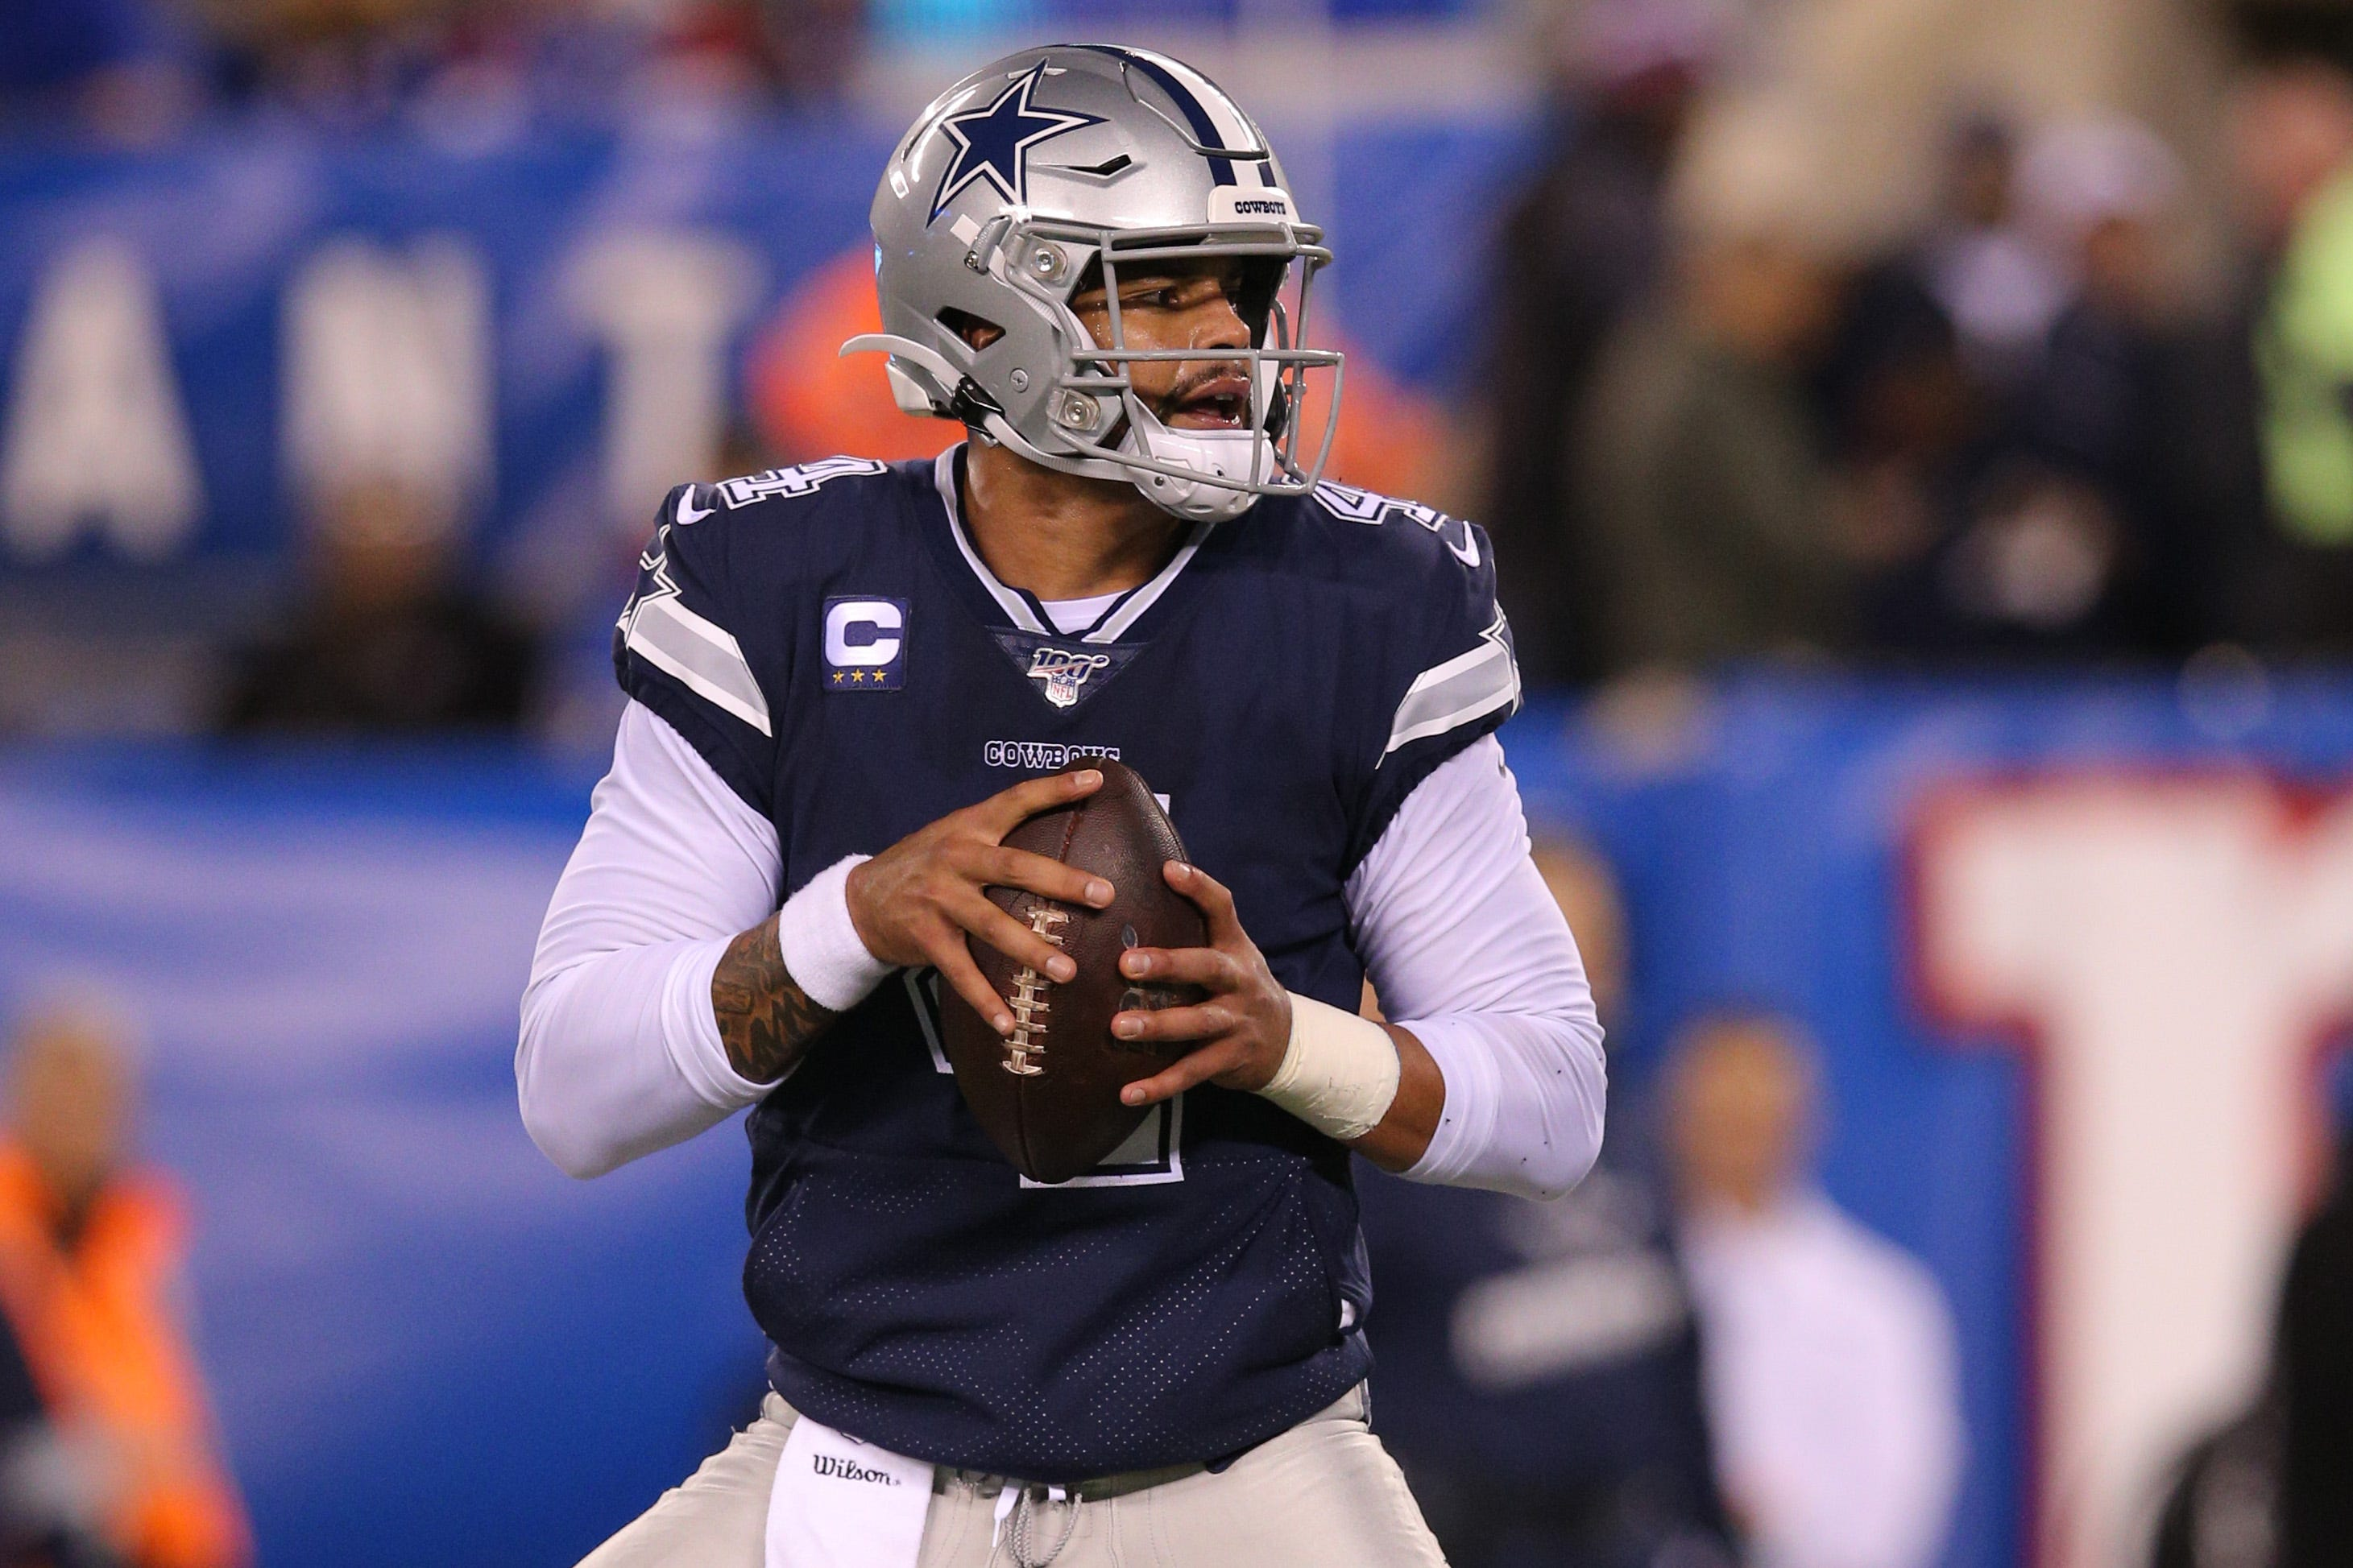 Dallas Cowboys overcome another slow start to top New York Giants on Monday Night Football